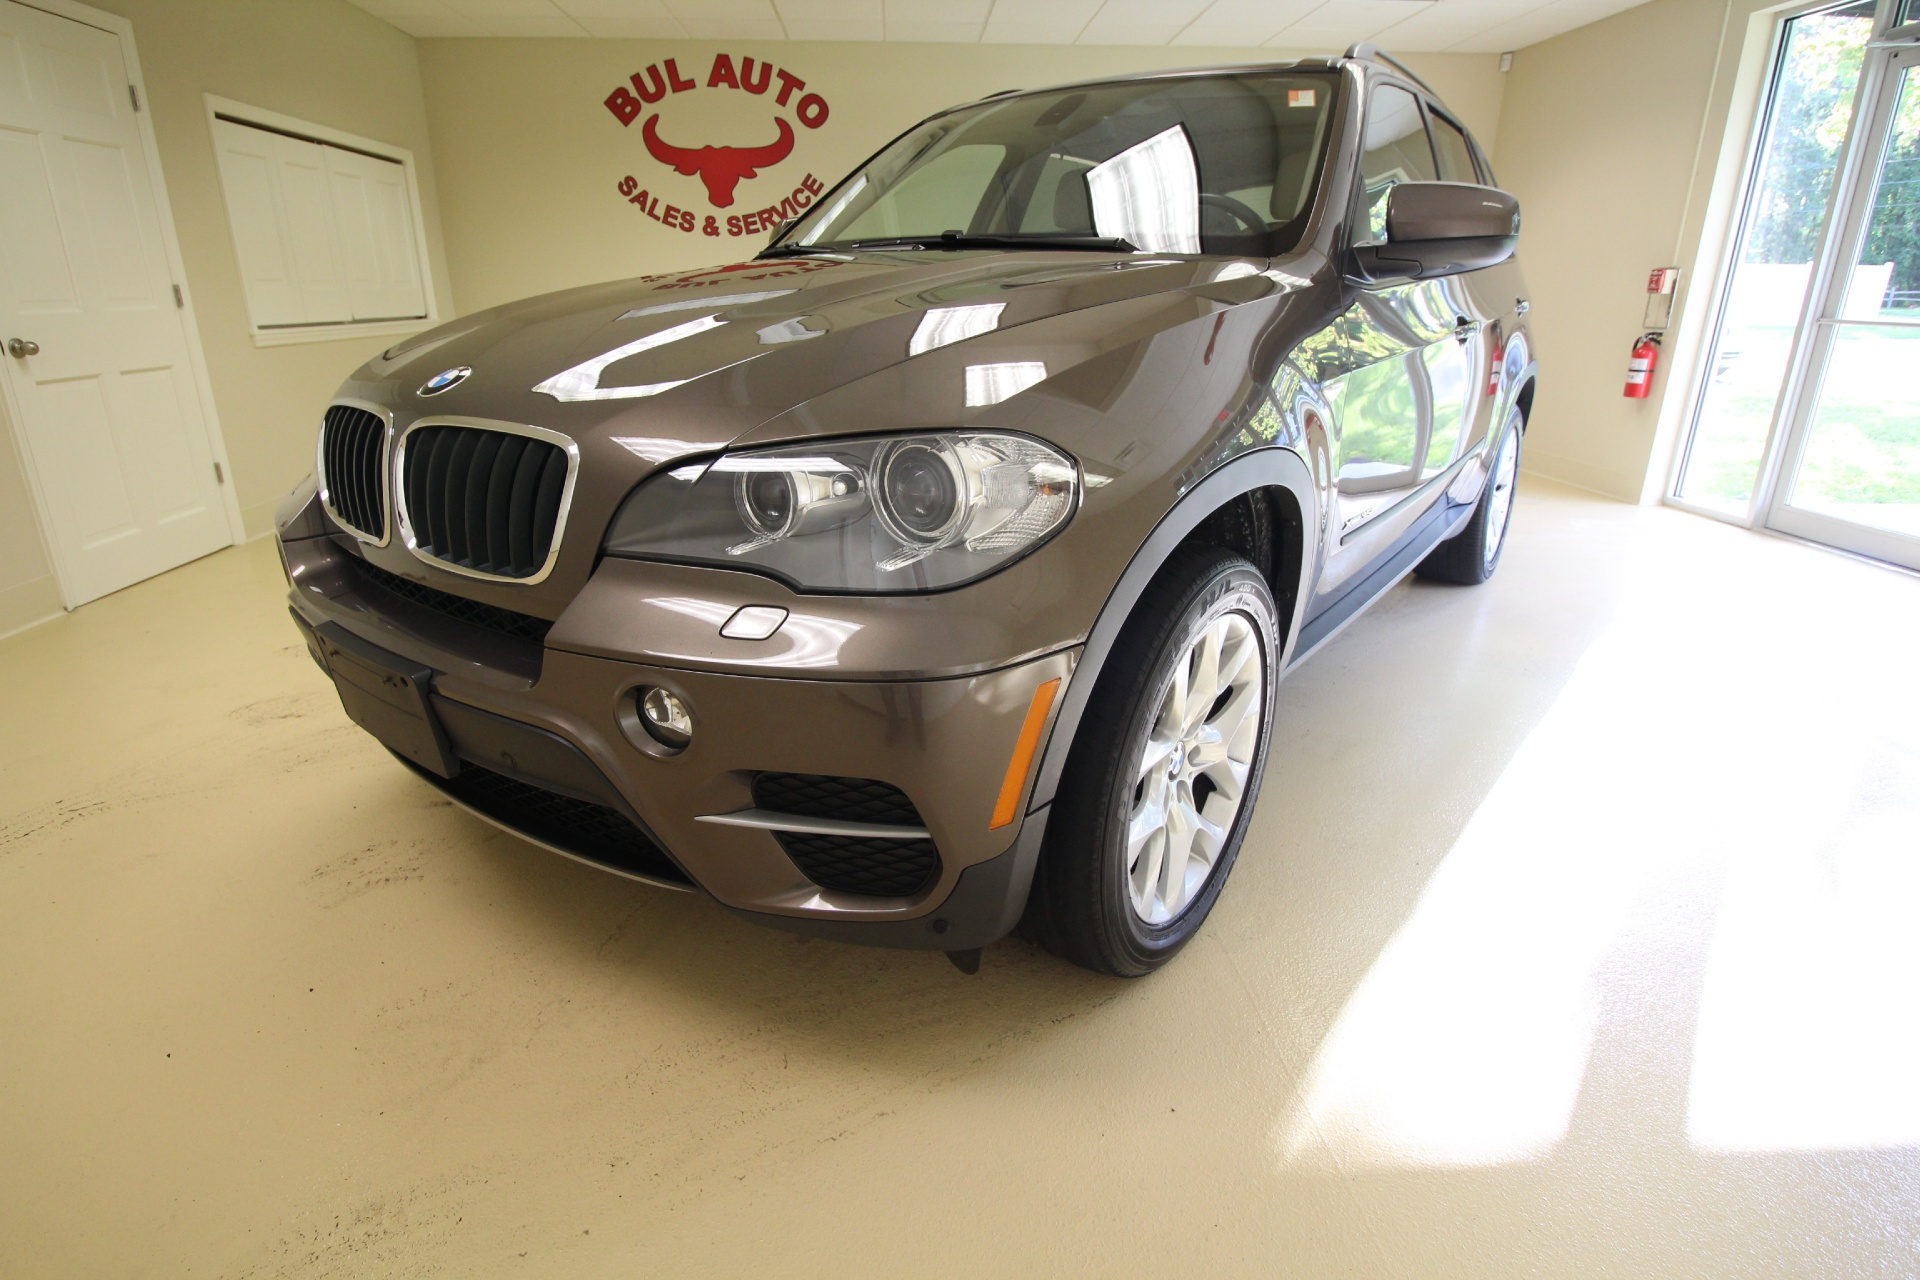 Bmw X5 Third Row >> 2012 Bmw X5 Xdrive35i Premium Loaded 3rd Row Seat Navigation